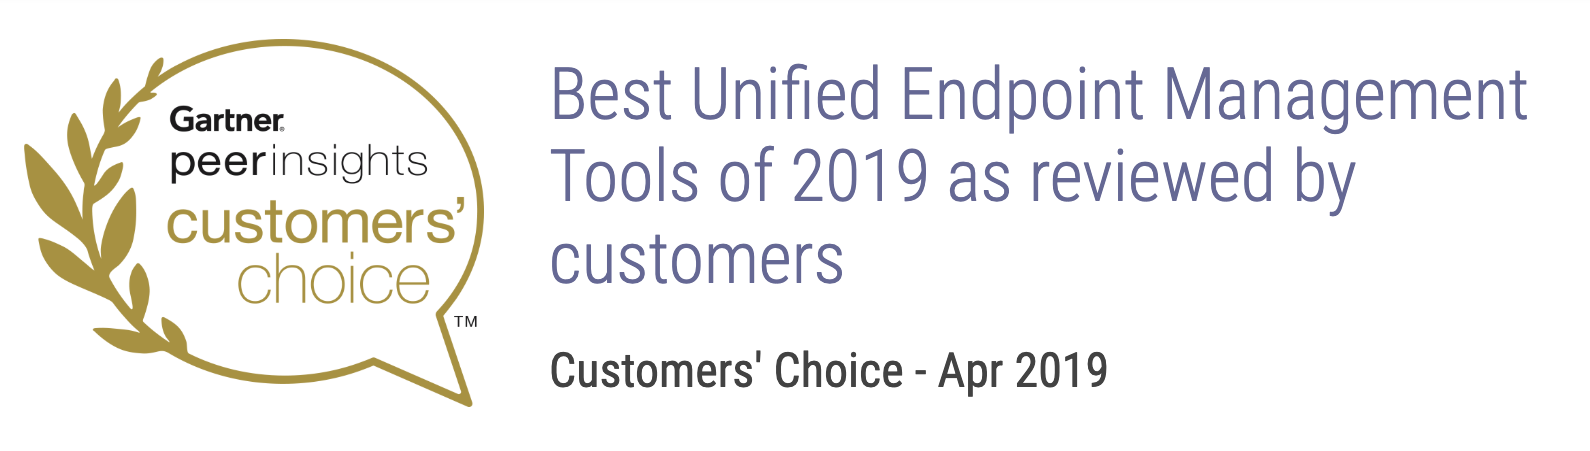 Best Unified Endpoint Management Tools of 2019 as reviewed by customers   Customers' Choice - Apr 2019